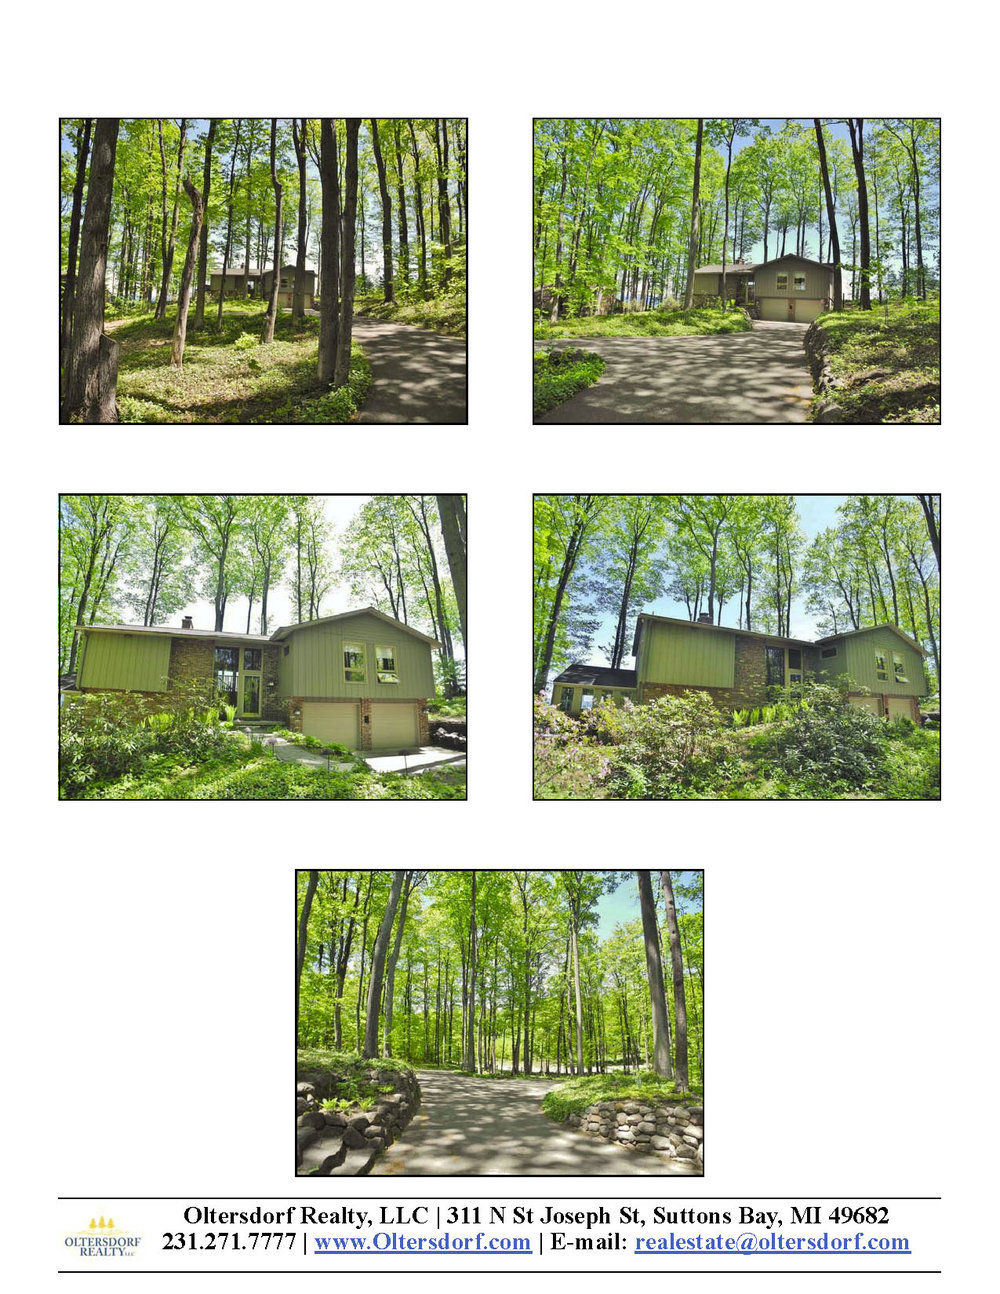 1451 S Bay View Trail, Suttons Bay, MI – Spectacular Panoramic West Bay Views, real estate for sale by Oltersdorf Realty LLC (7).jpg